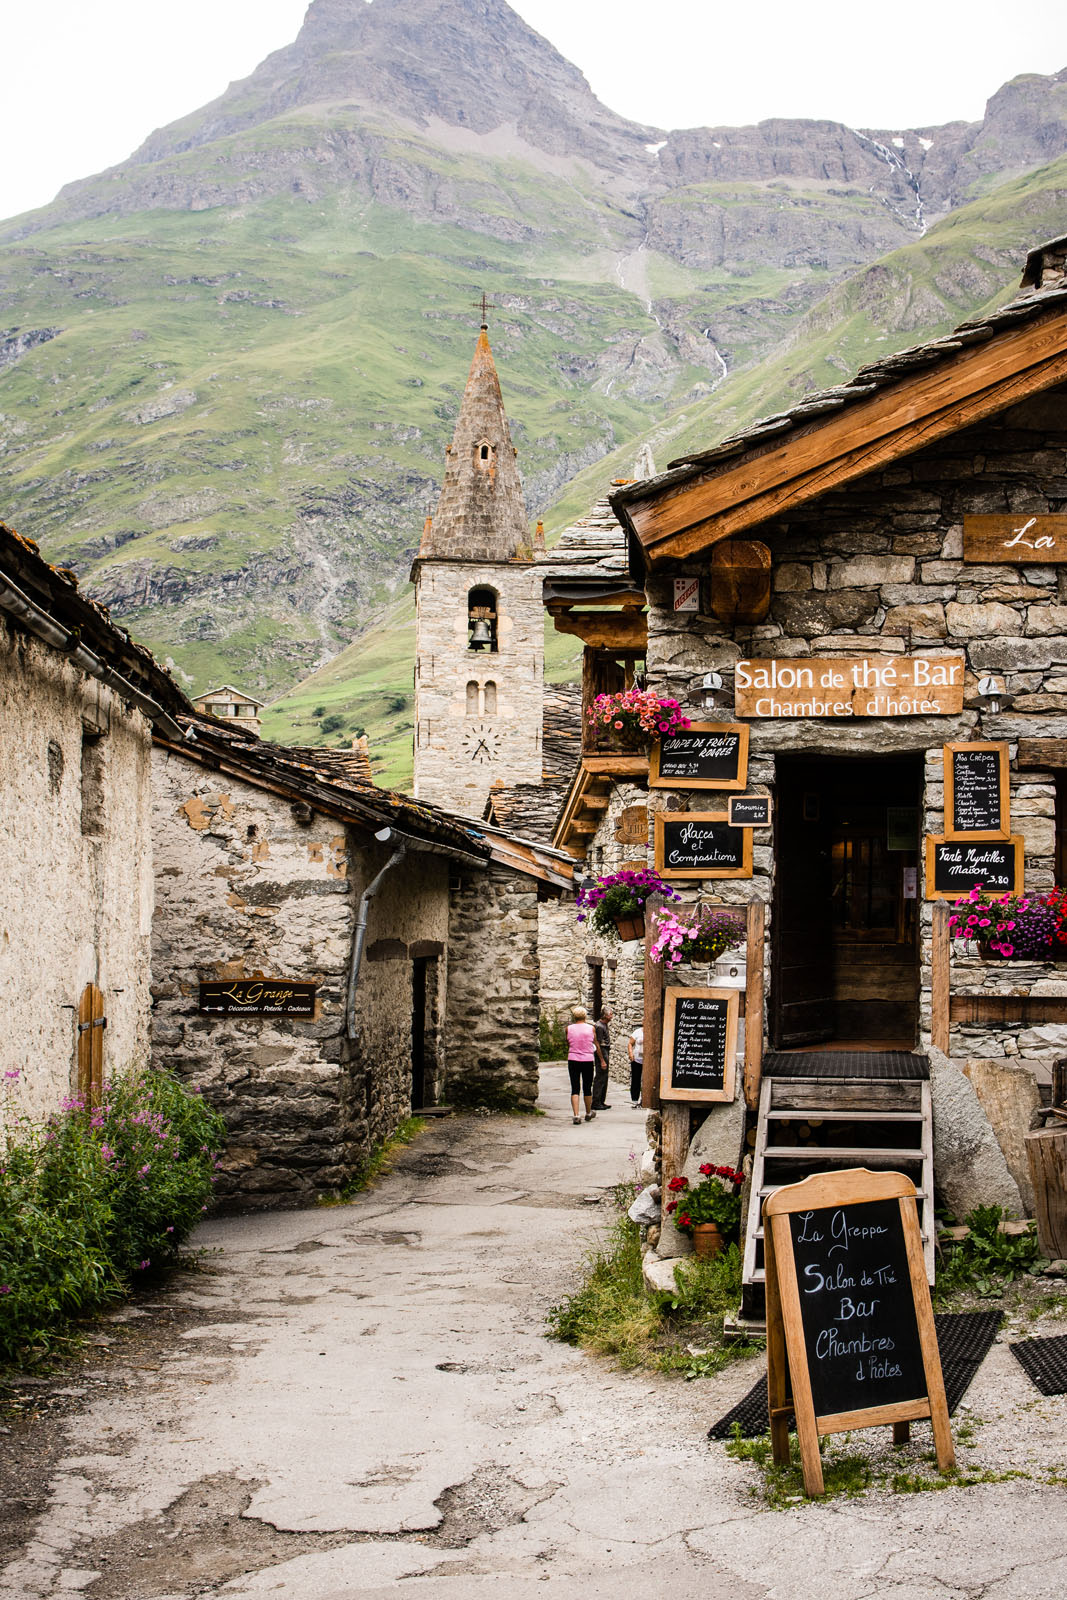 Destinations de julie haute maurienne vanoise - Office du tourisme bonneval sur arc ...